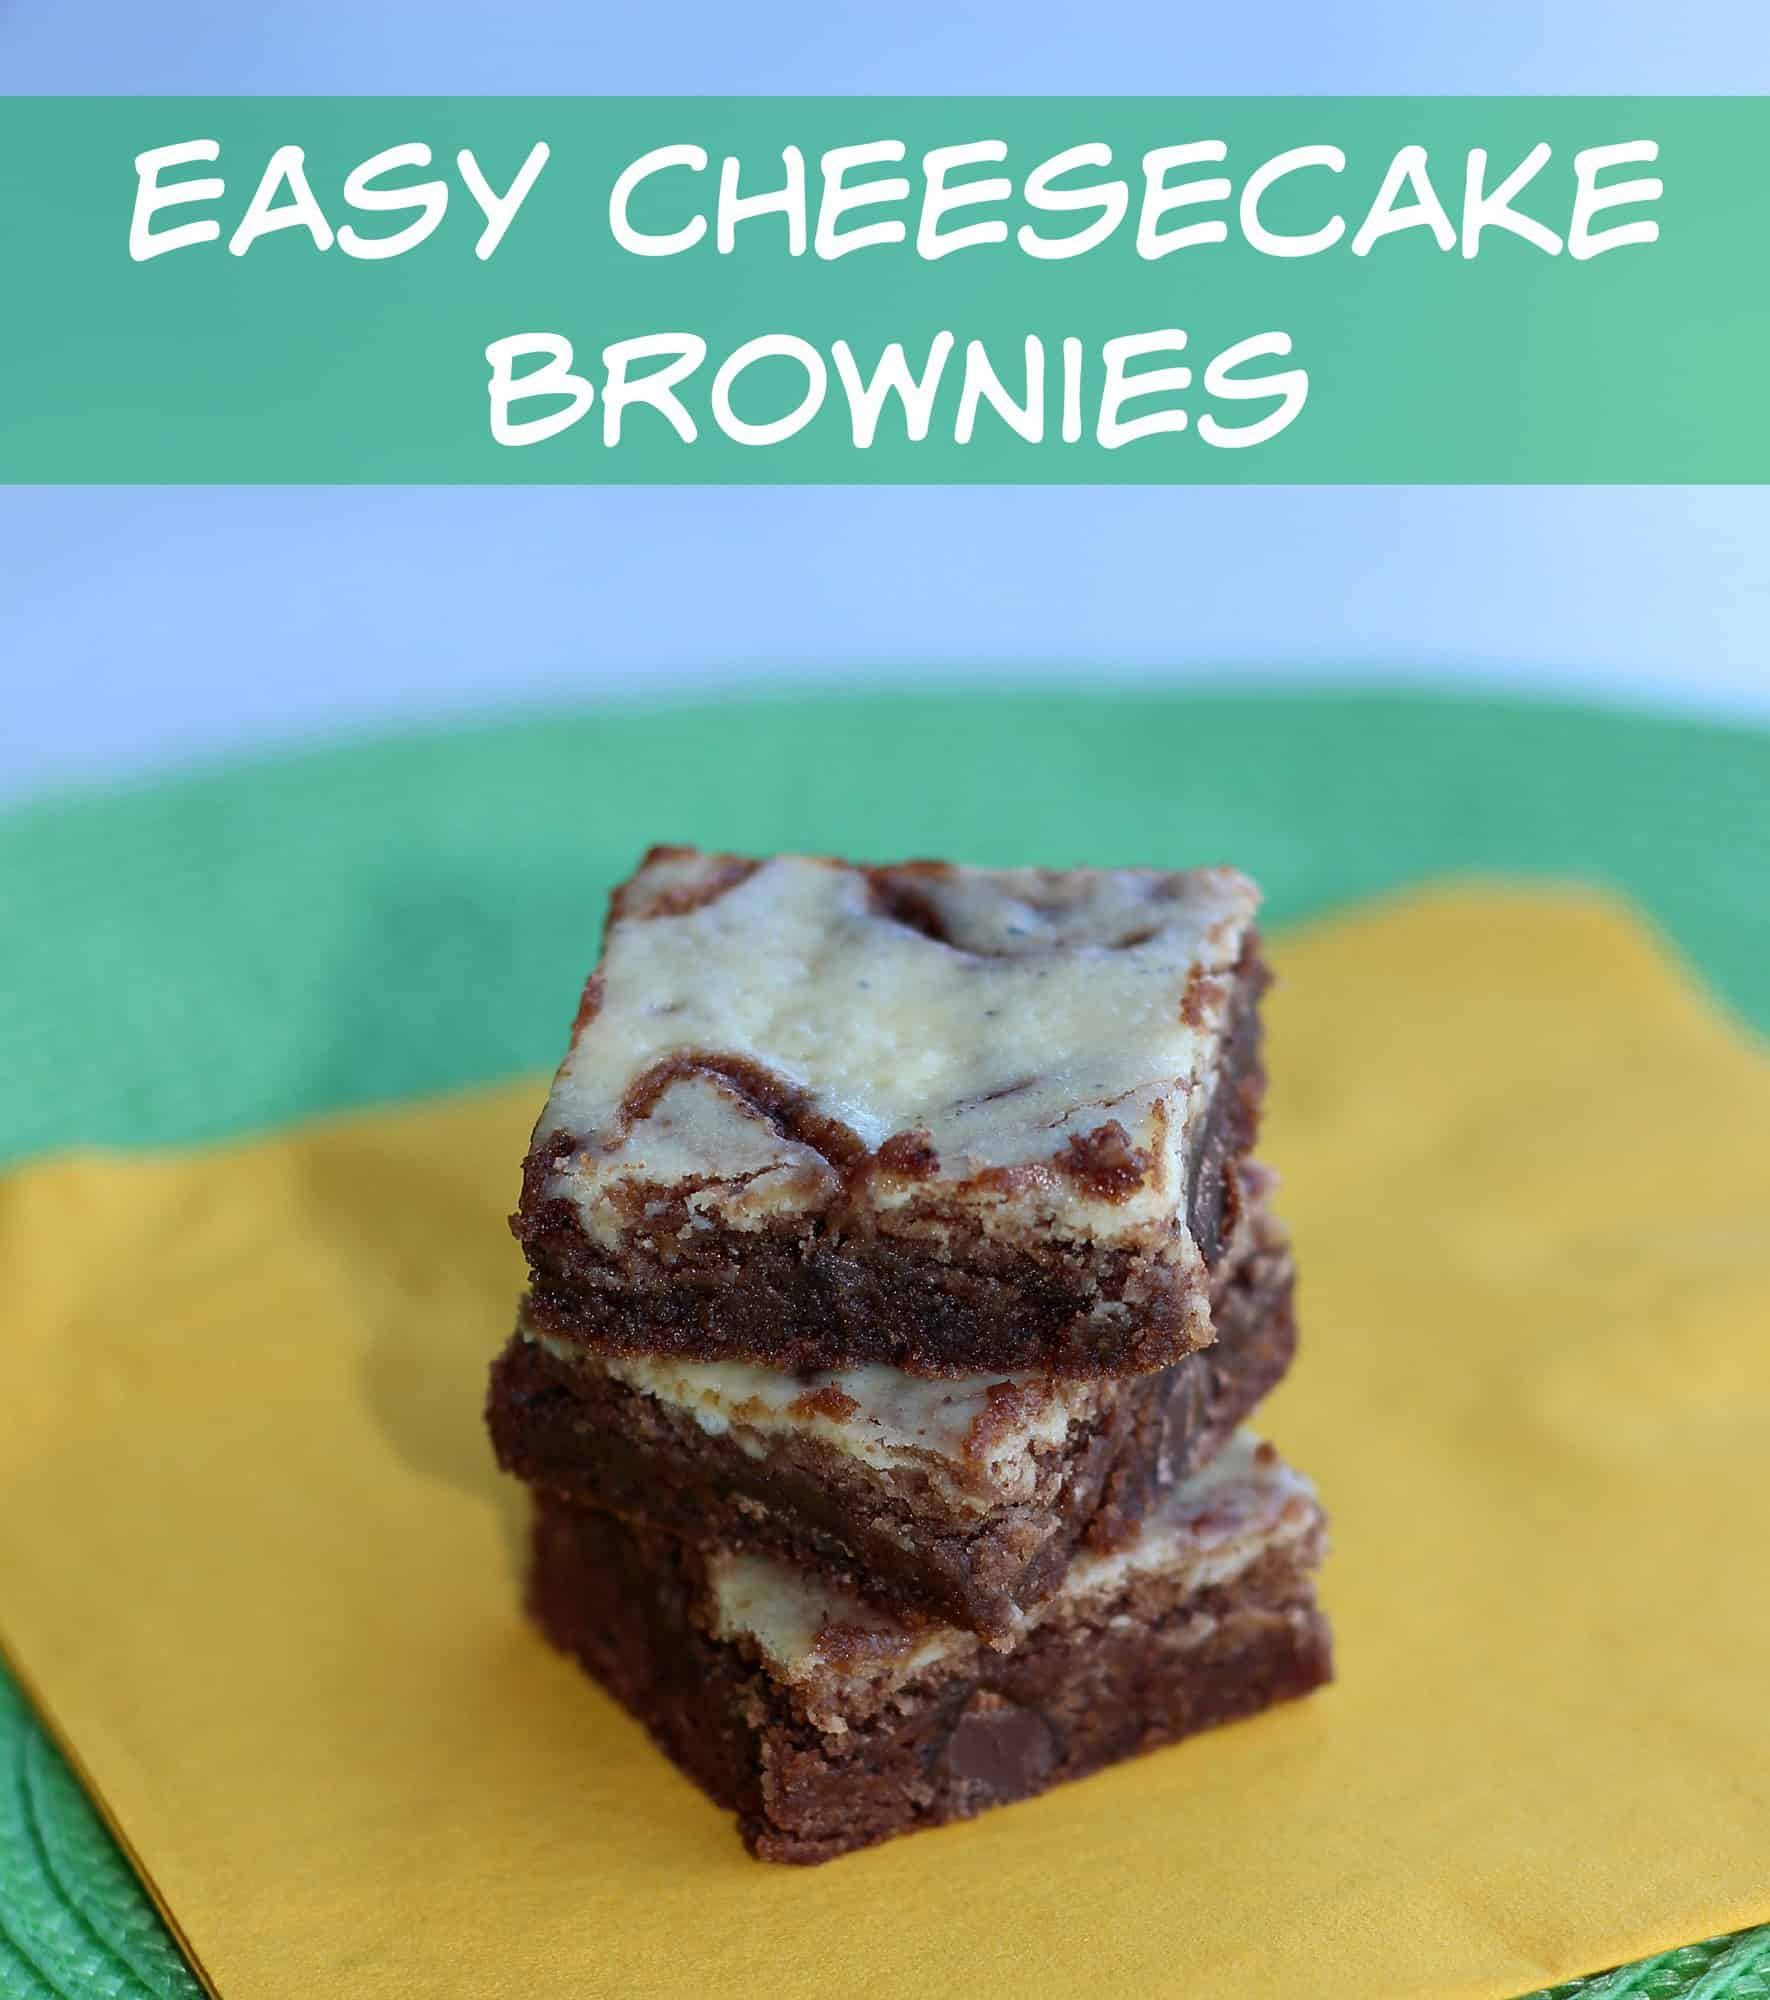 how to make brownies easy at home